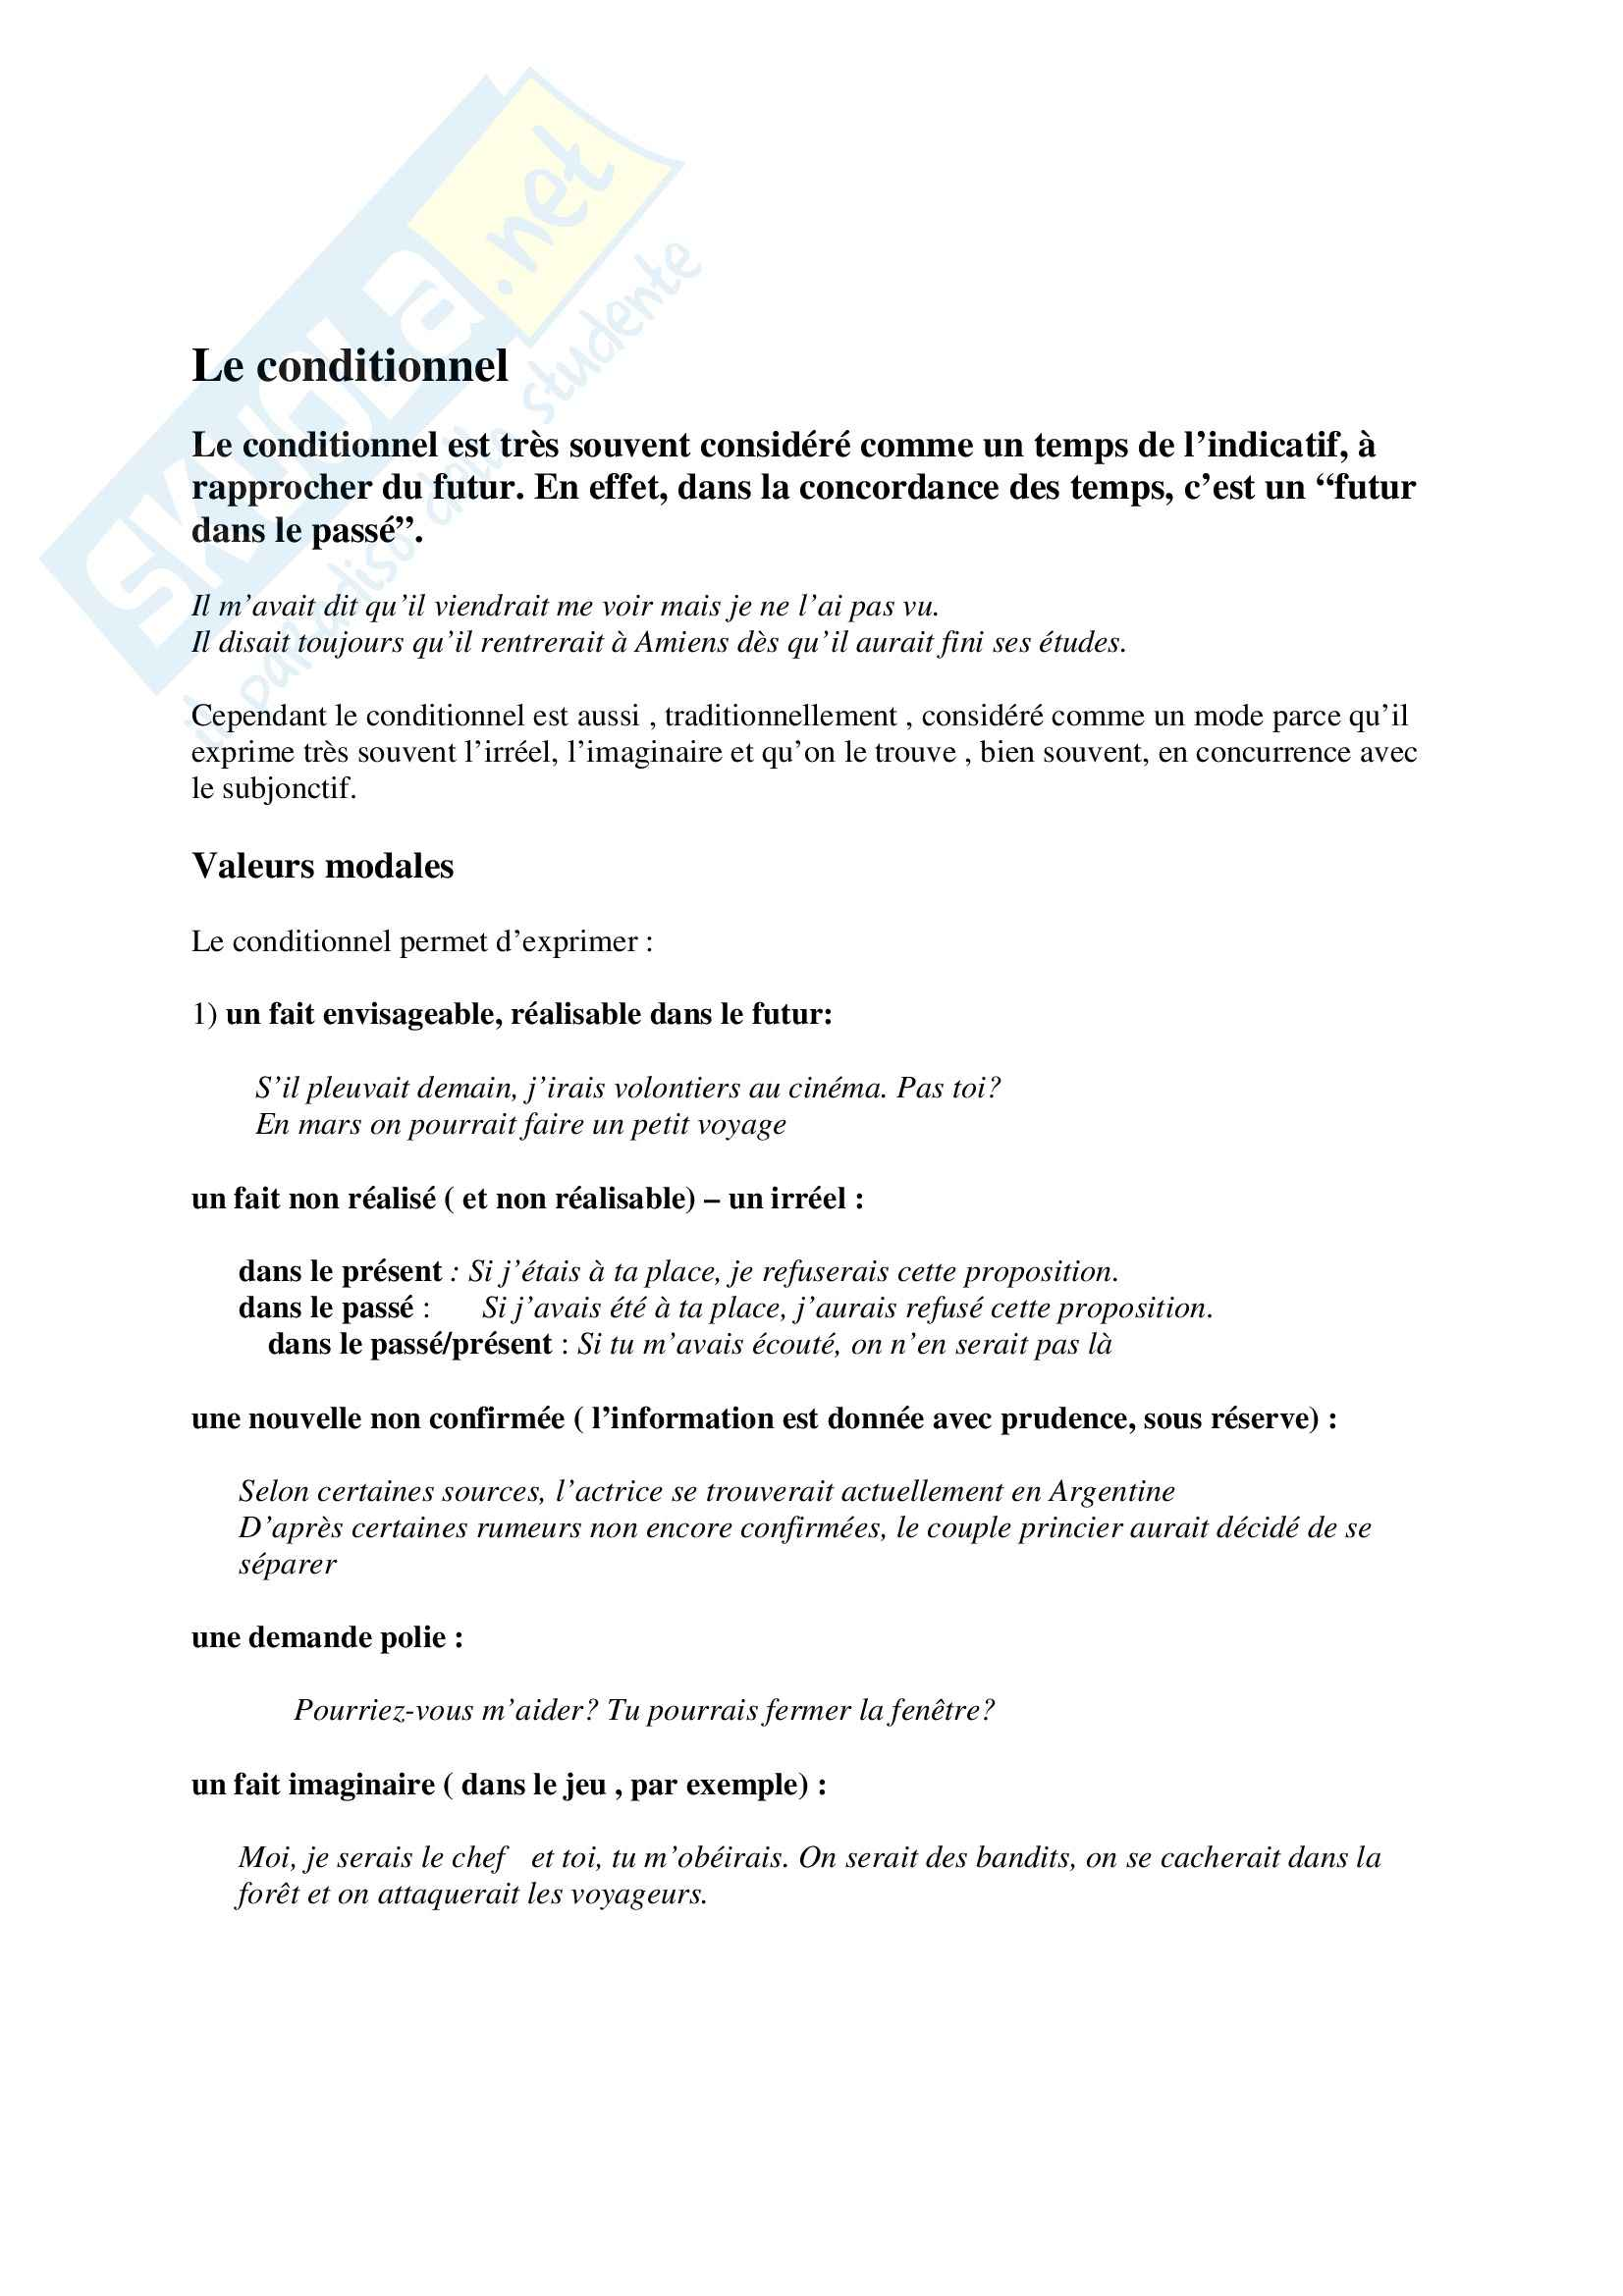 Le conditionnel Pag. 1